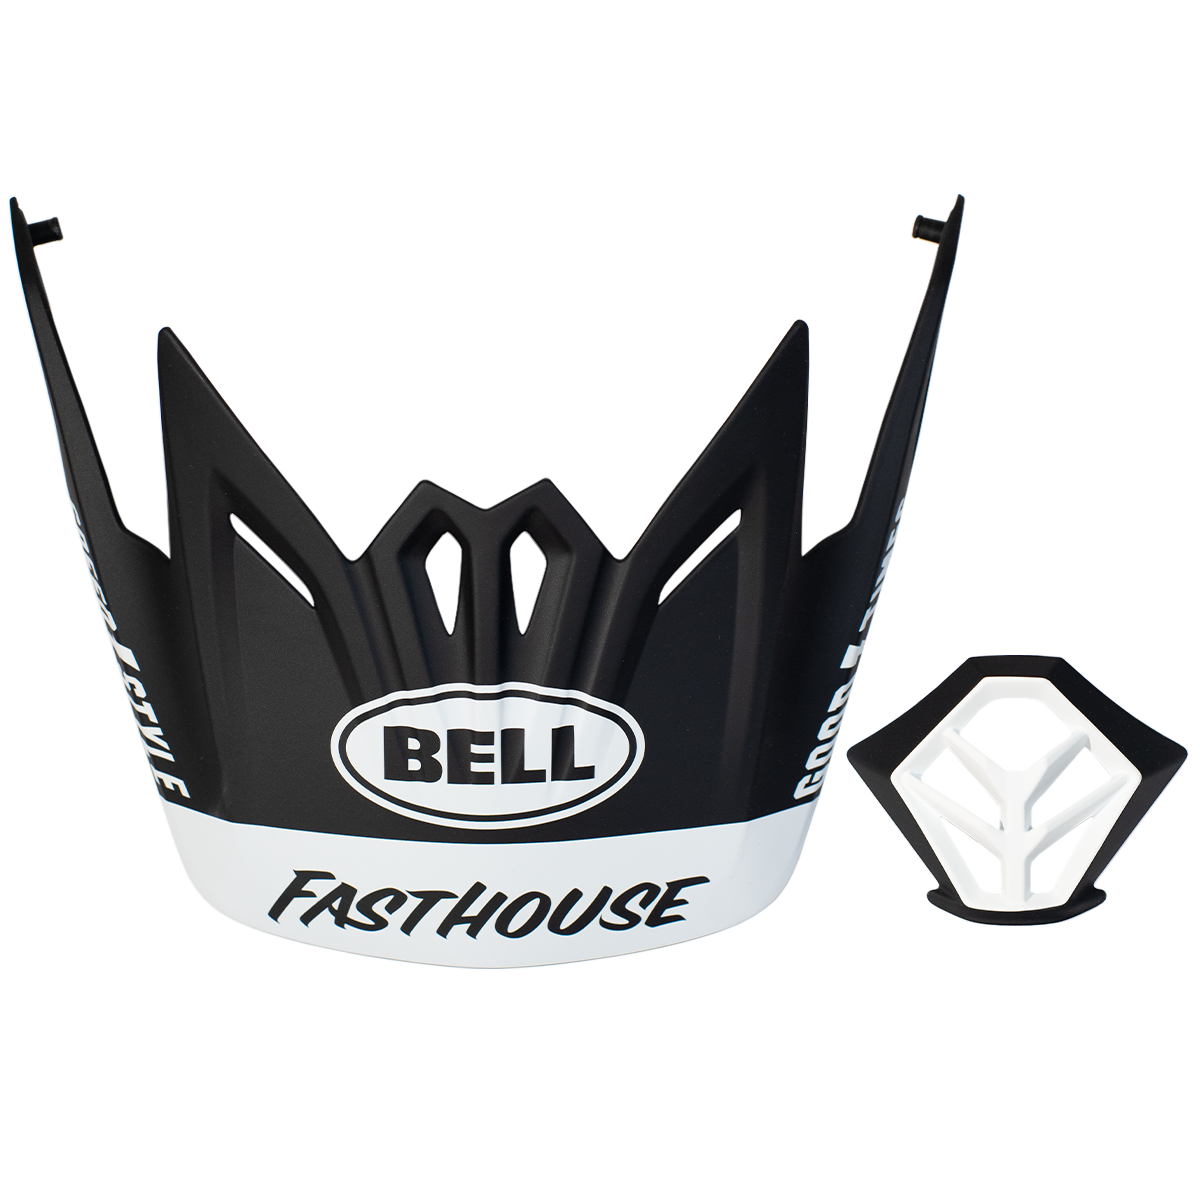 Bell MTB Visor + Mouthpiece Kit Black/White